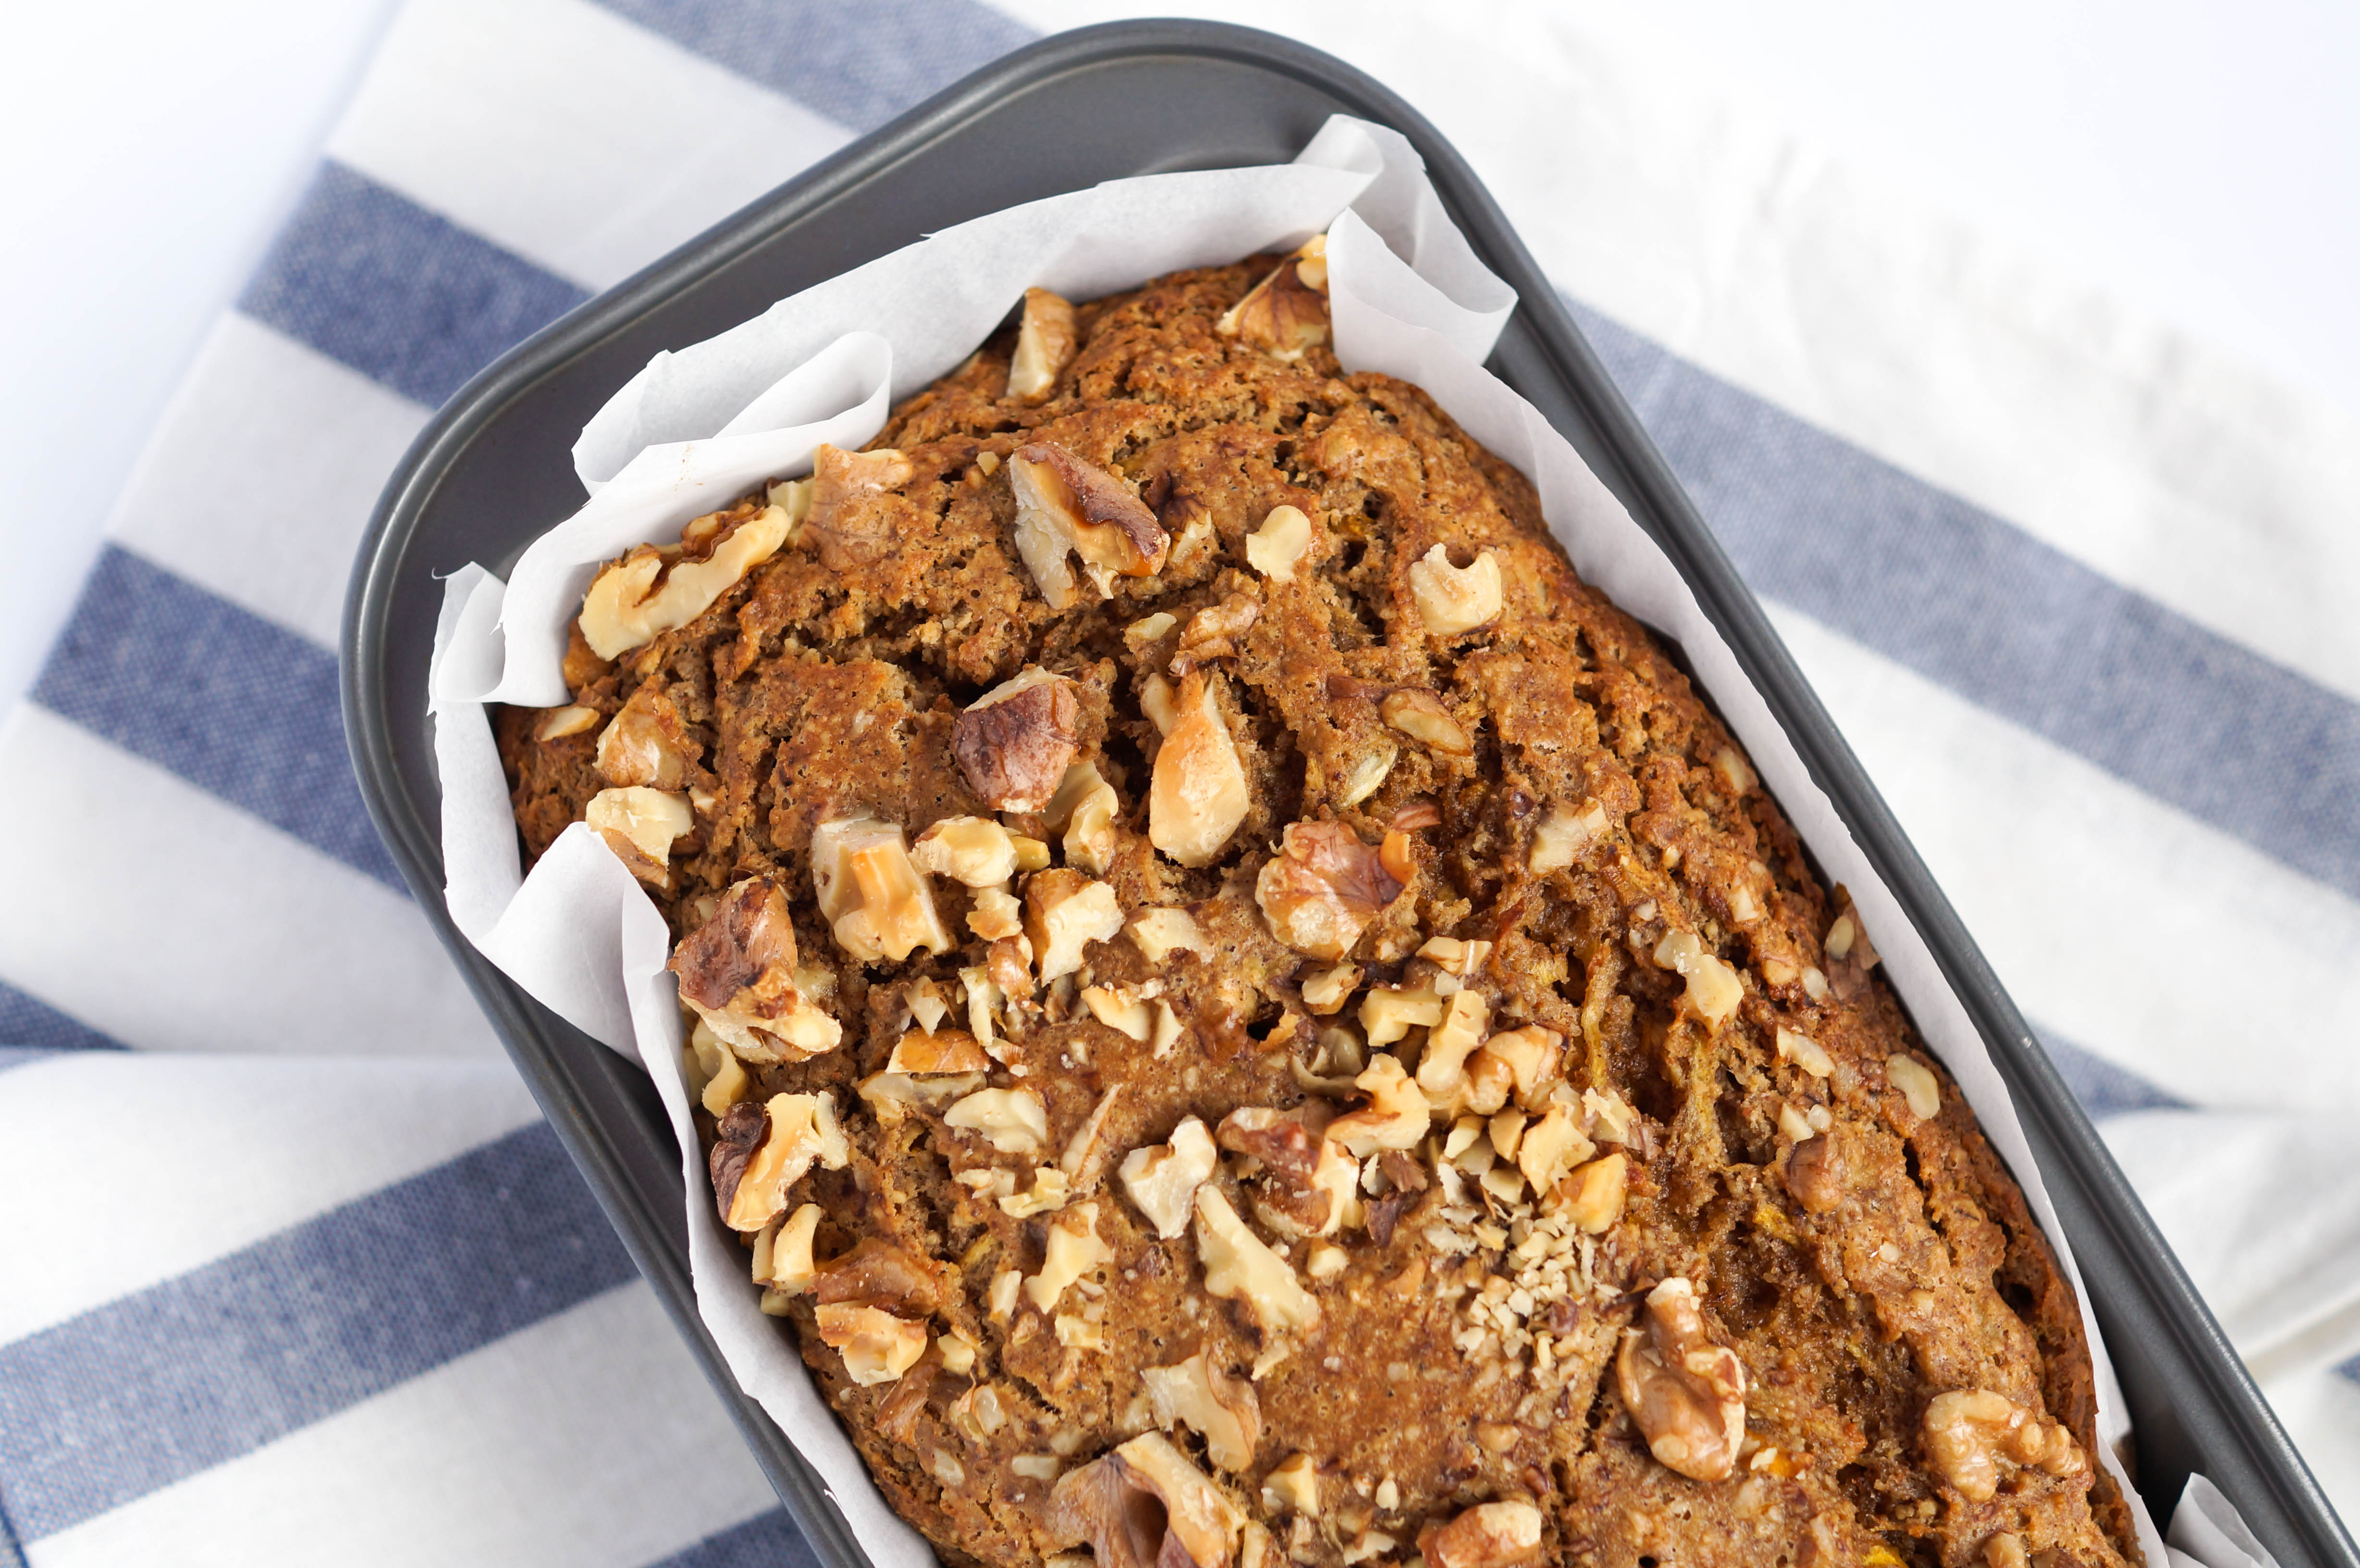 Healthy Breakfast Zucchini Bread (Dairy-free, Soy-free & No Refined Sugar)